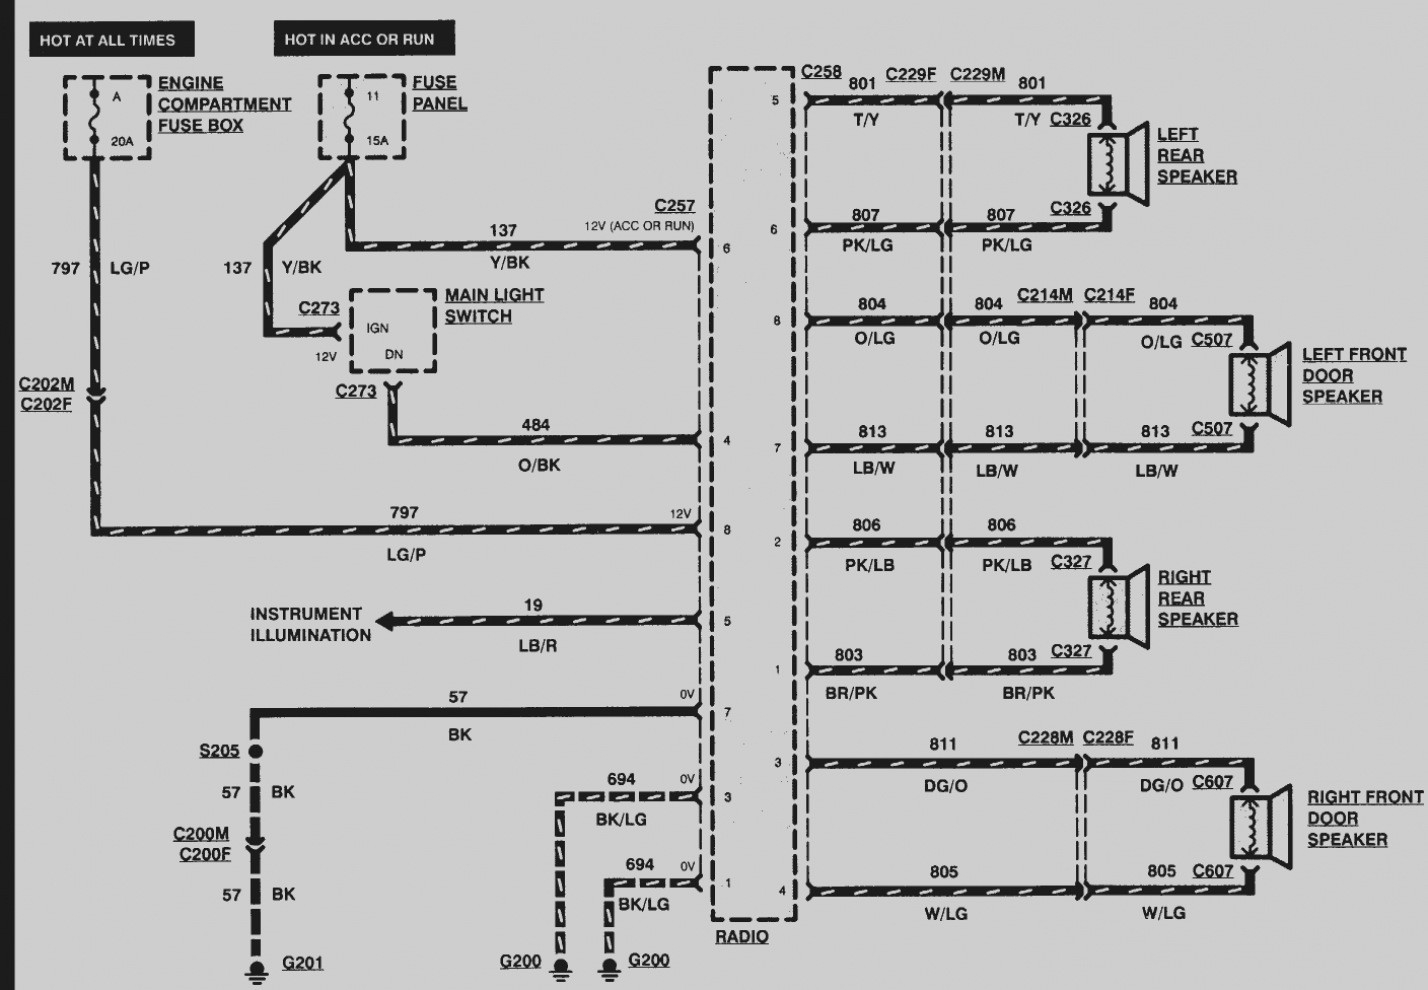 1999 mercury mountaineer radio wiring diagram 2002 mercury mountaineer radio wiring diagram | free ...